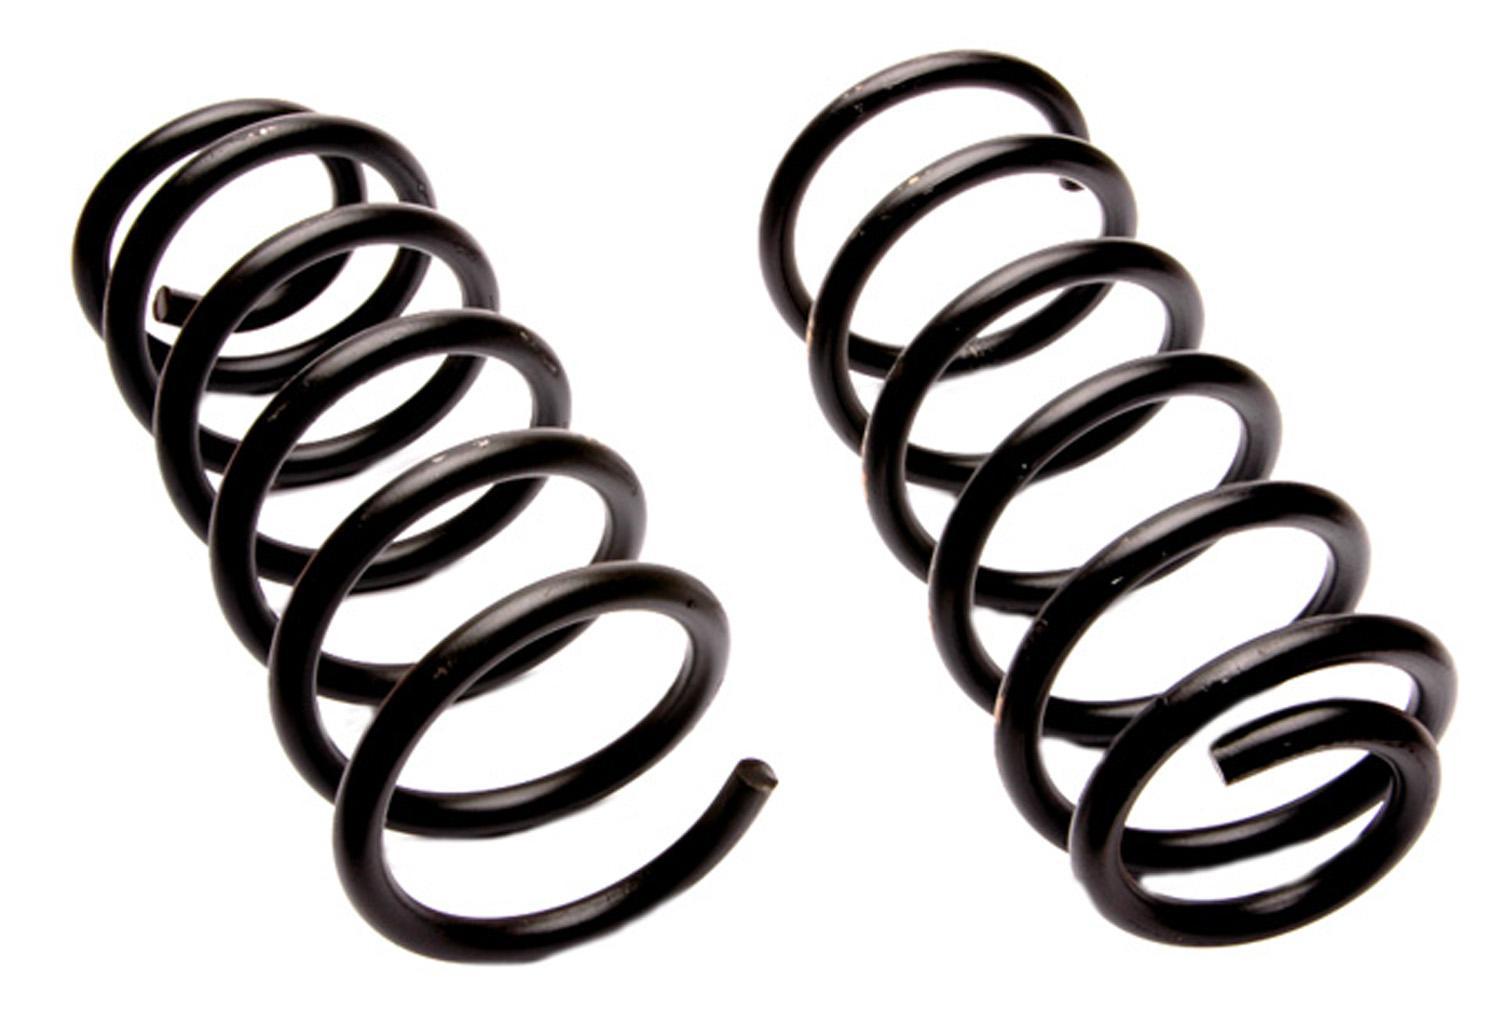 ACDELCO PROFESSIONAL - Coil Spring - DCC 45H0161